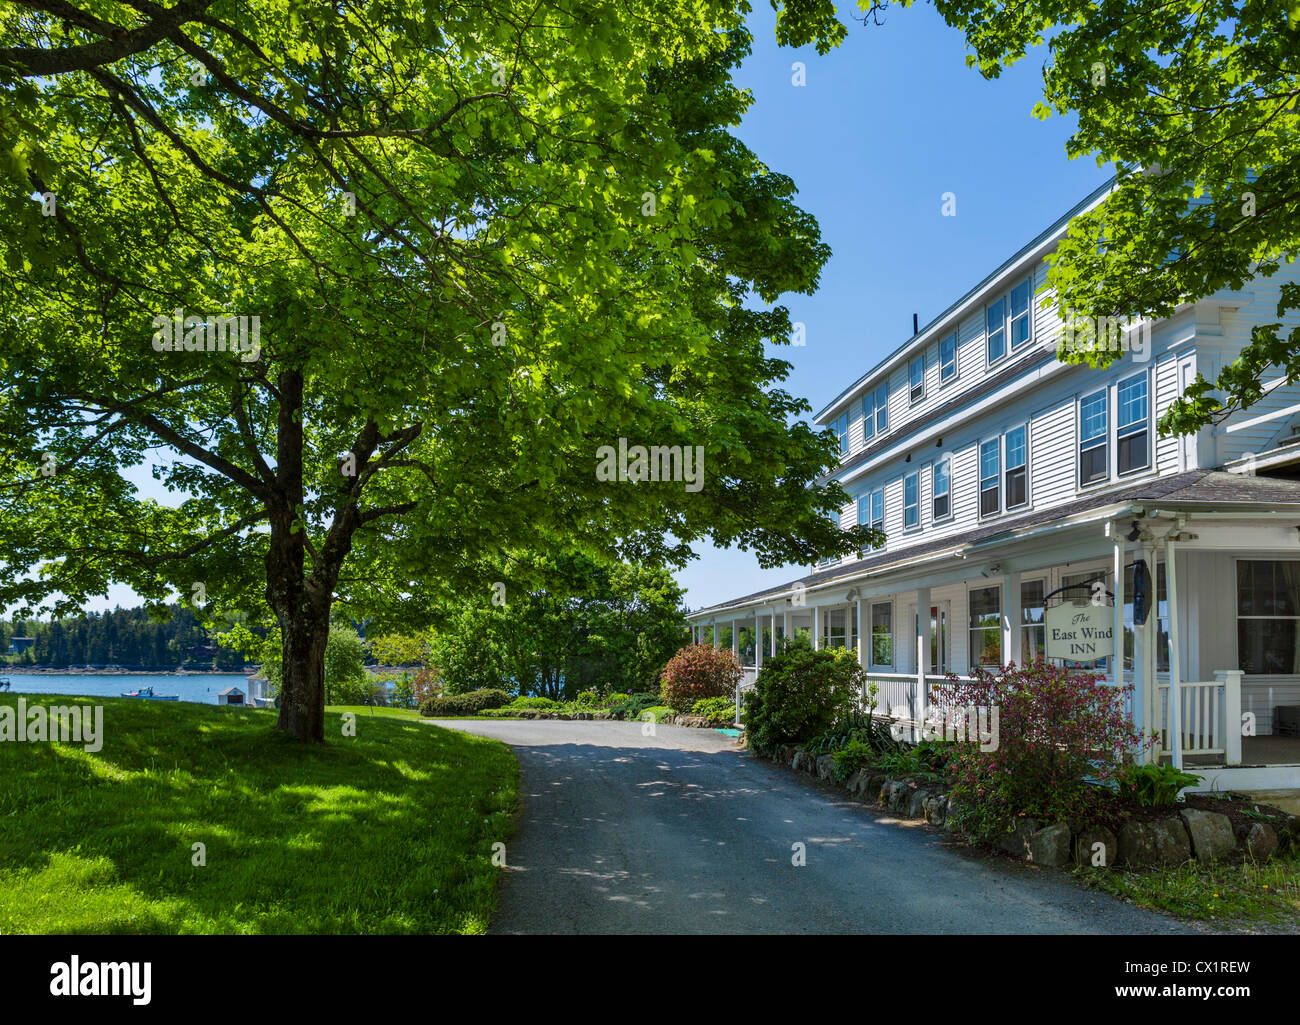 The East Wind Inn in the village of Tenants Harbor on St George Peninsula, Knox County, Maine, USA - Stock Image